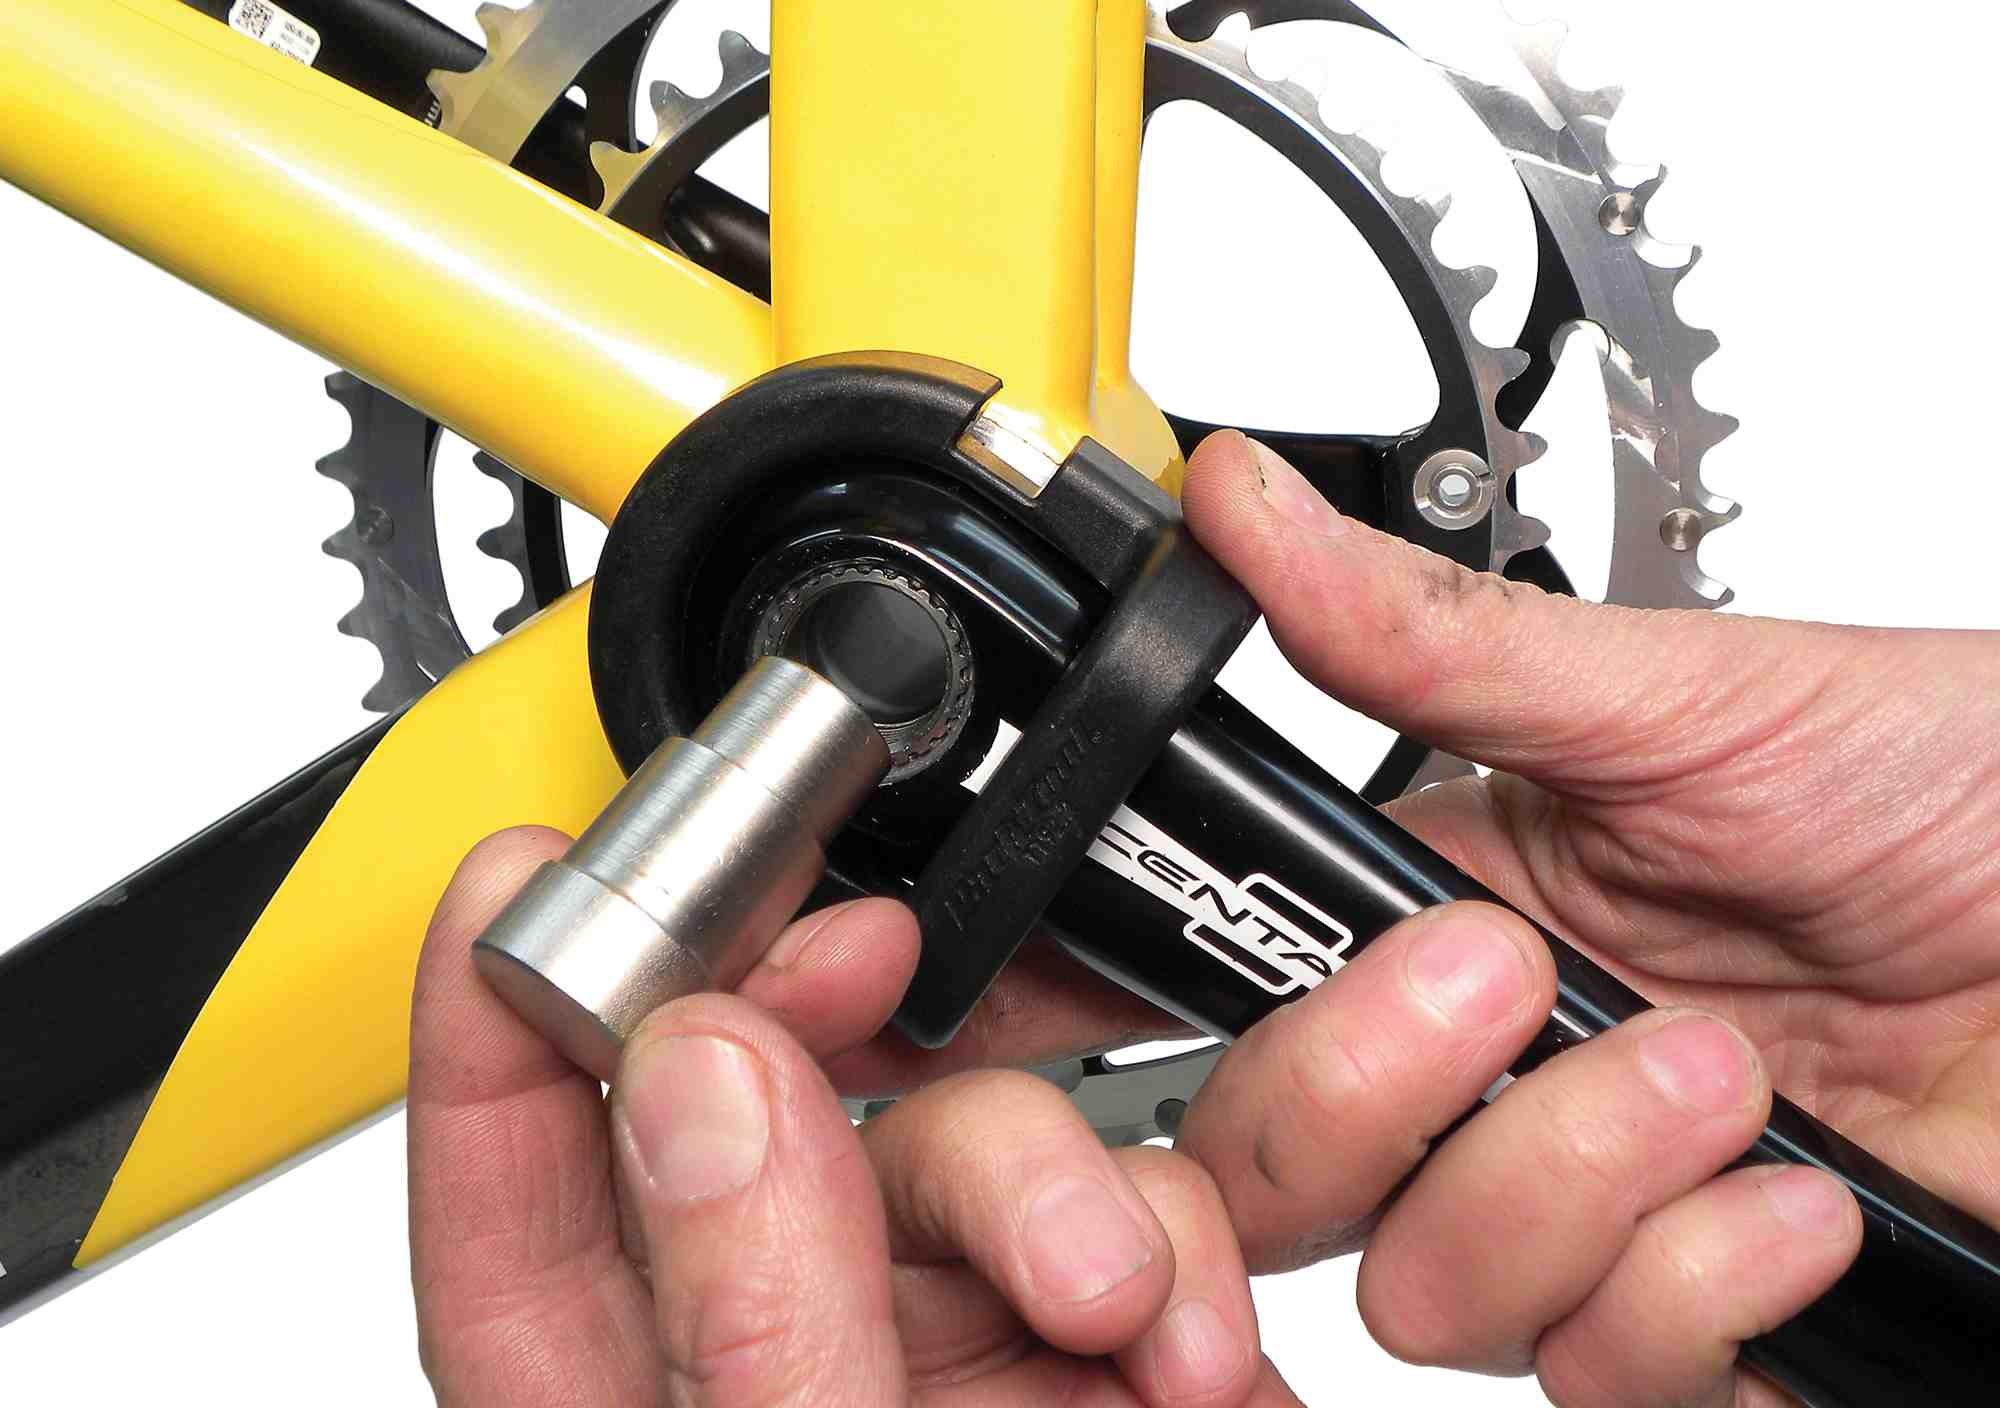 How to Remove Bike Crank Without a Puller